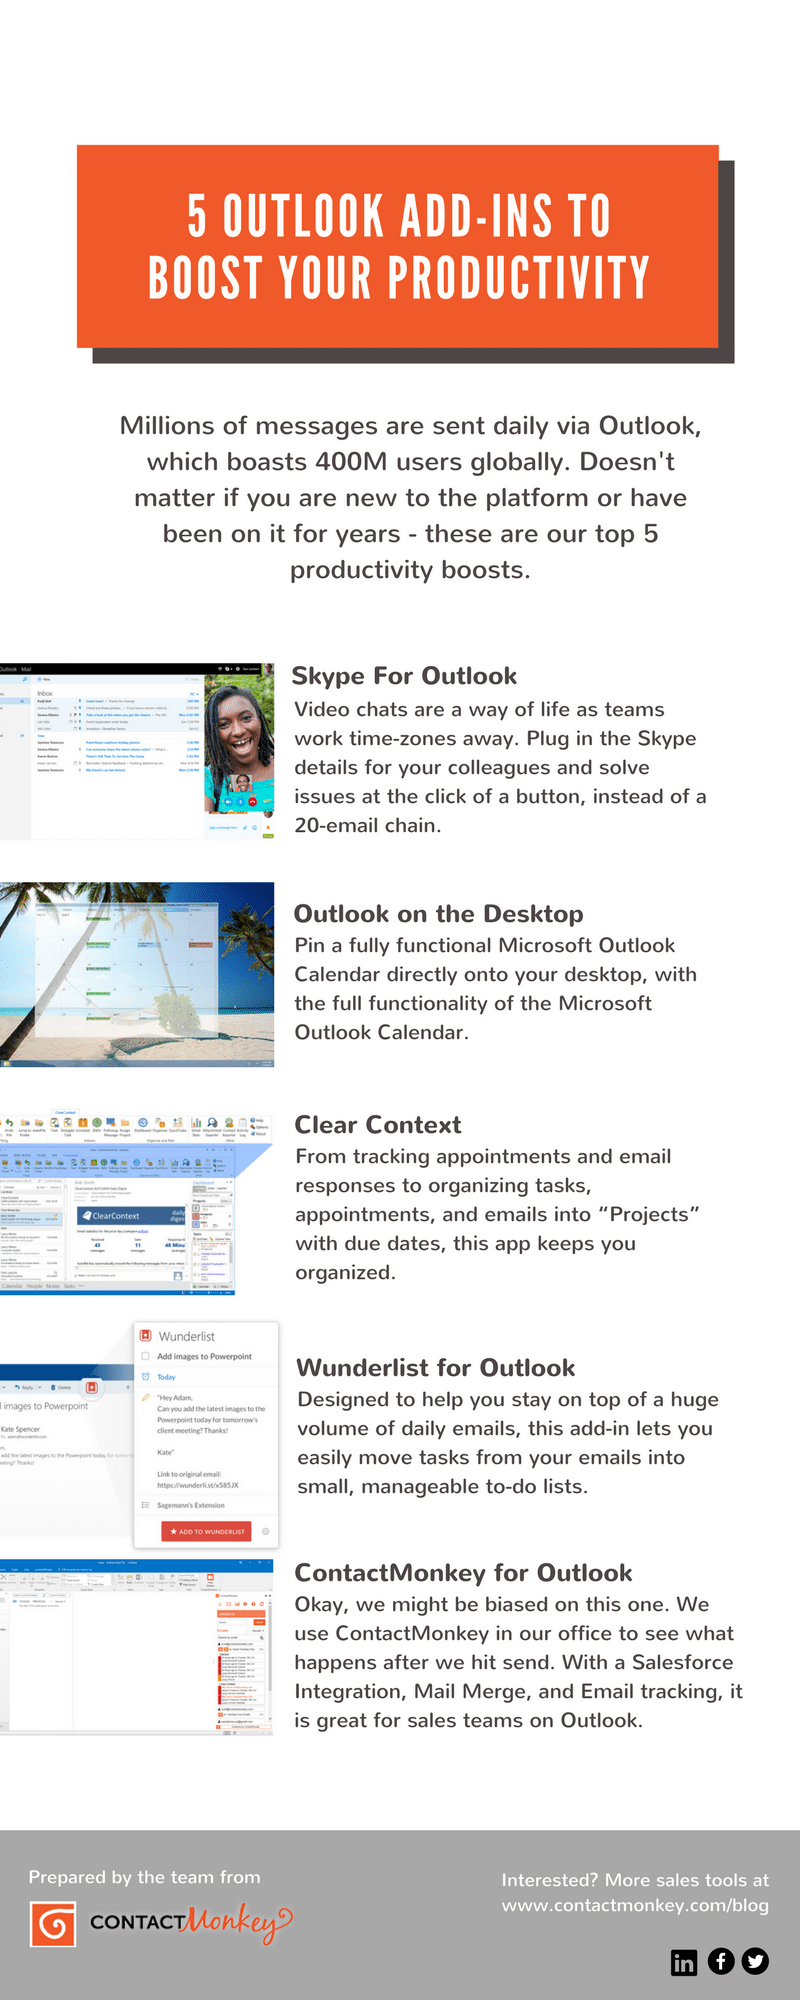 OutlookAppscom Outlook Addins Email Productivity Tools - induced info